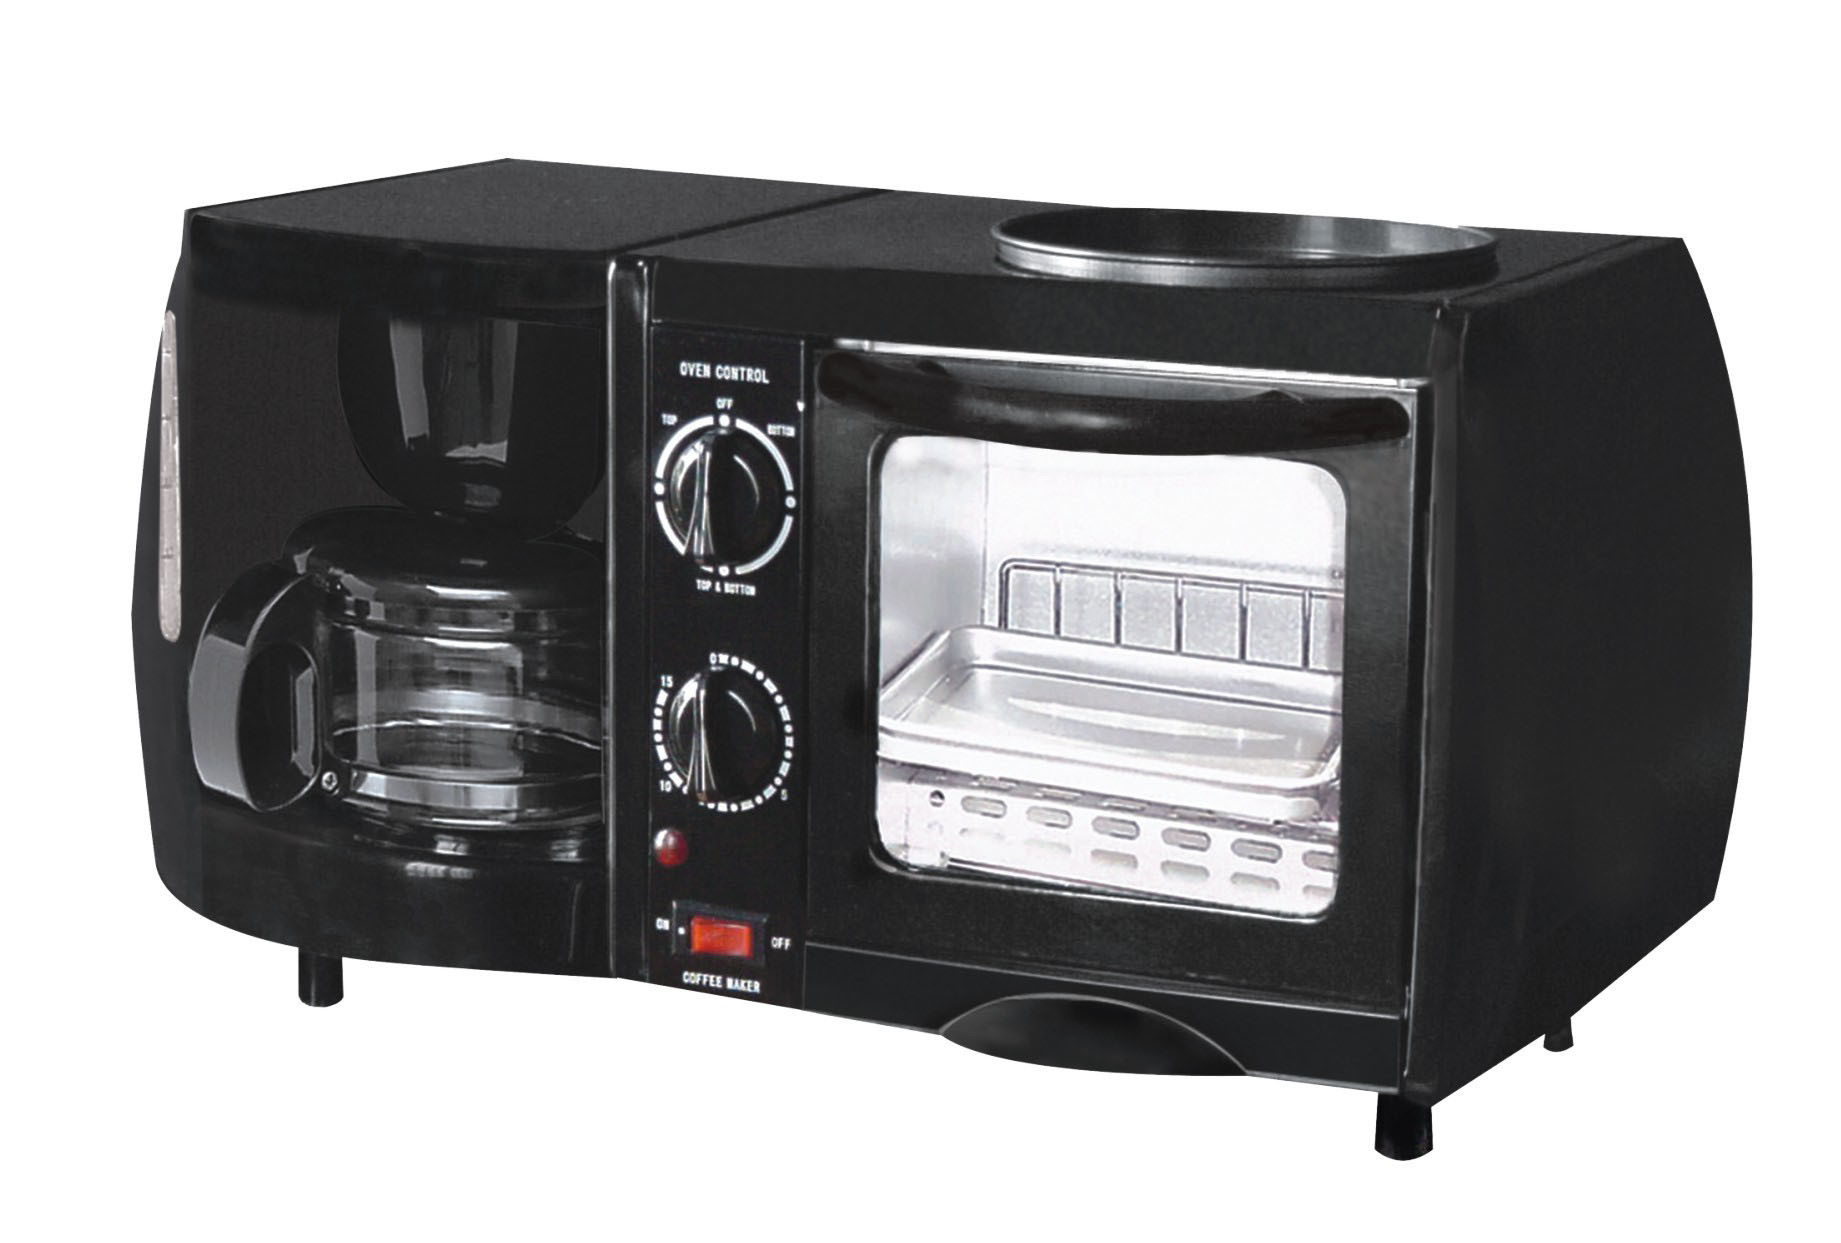 Toaster Oven (WK-1121) - China Oven, Electric Oven